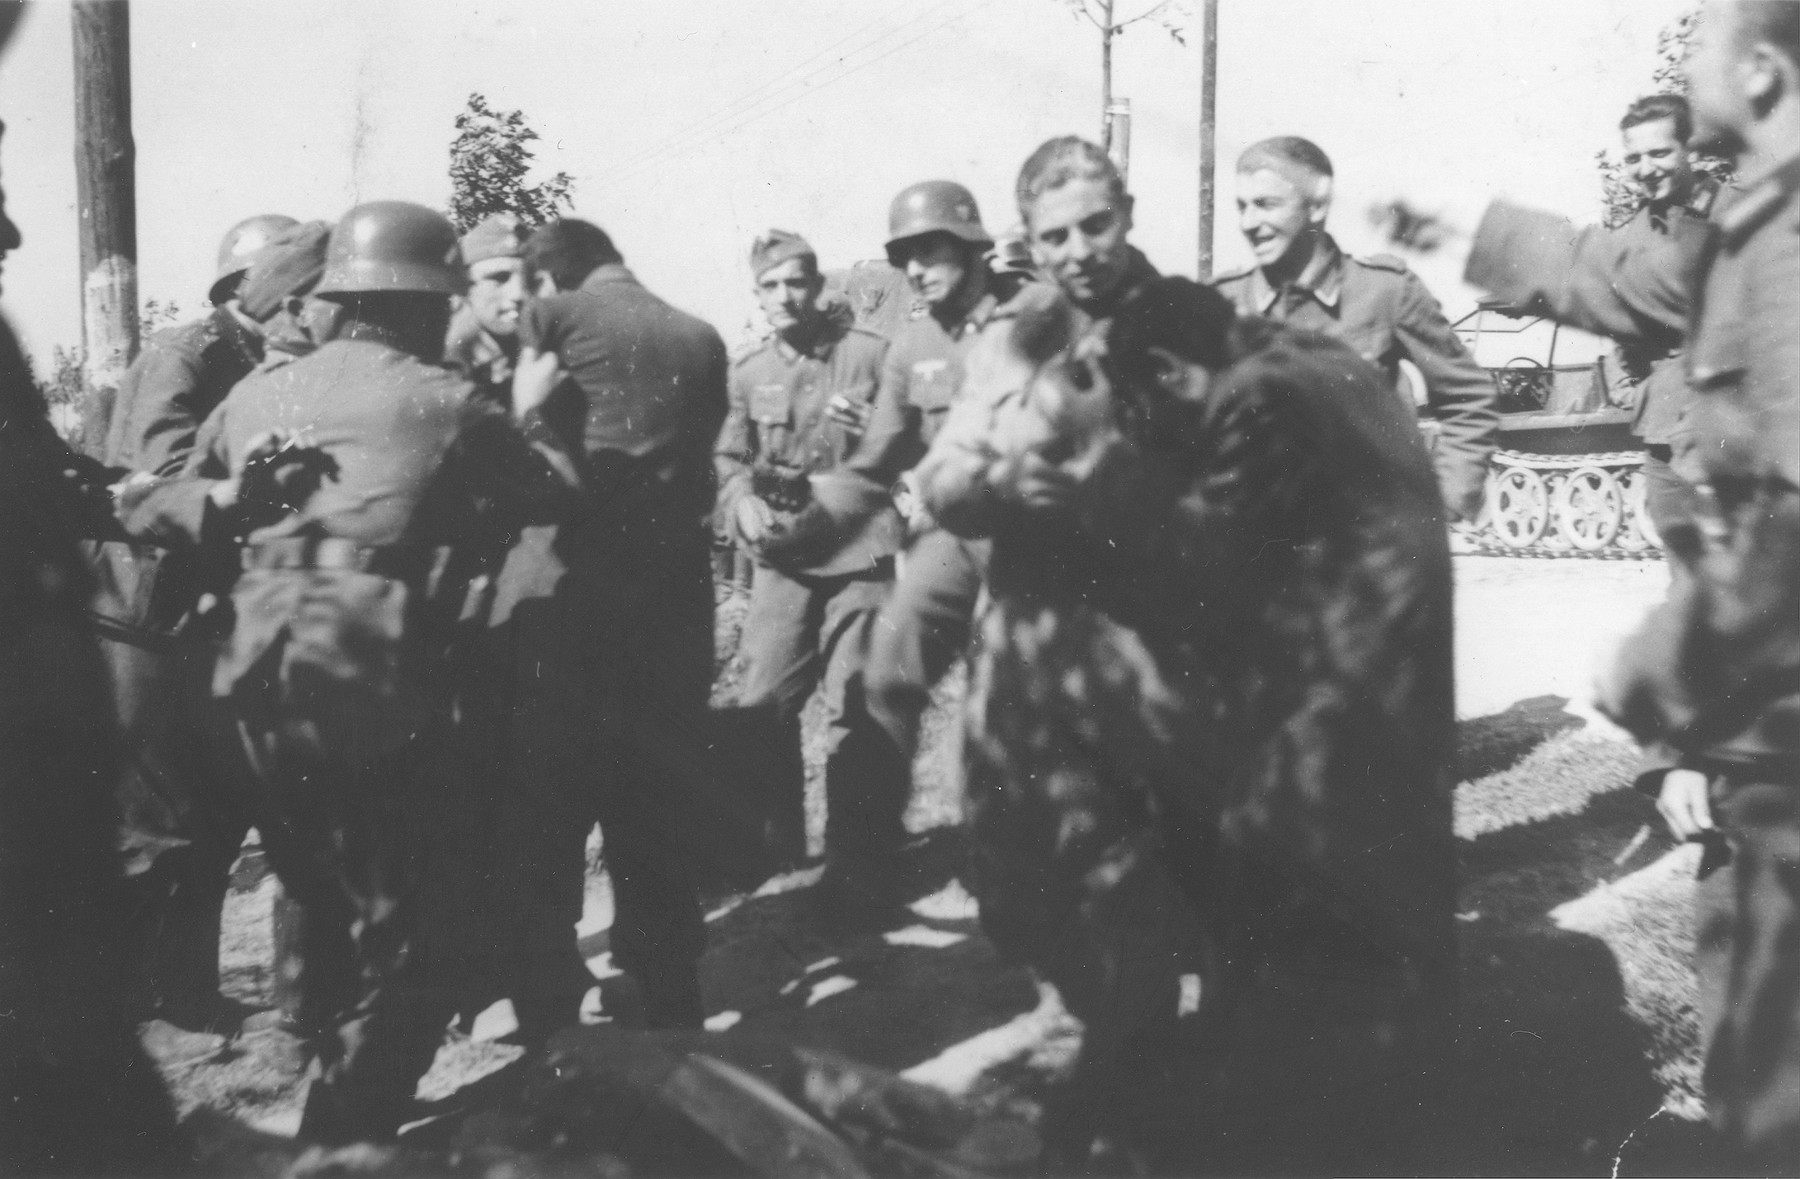 German soldiers beat Polish Jews in the vicinity of Lodz during the invasion of Poland.